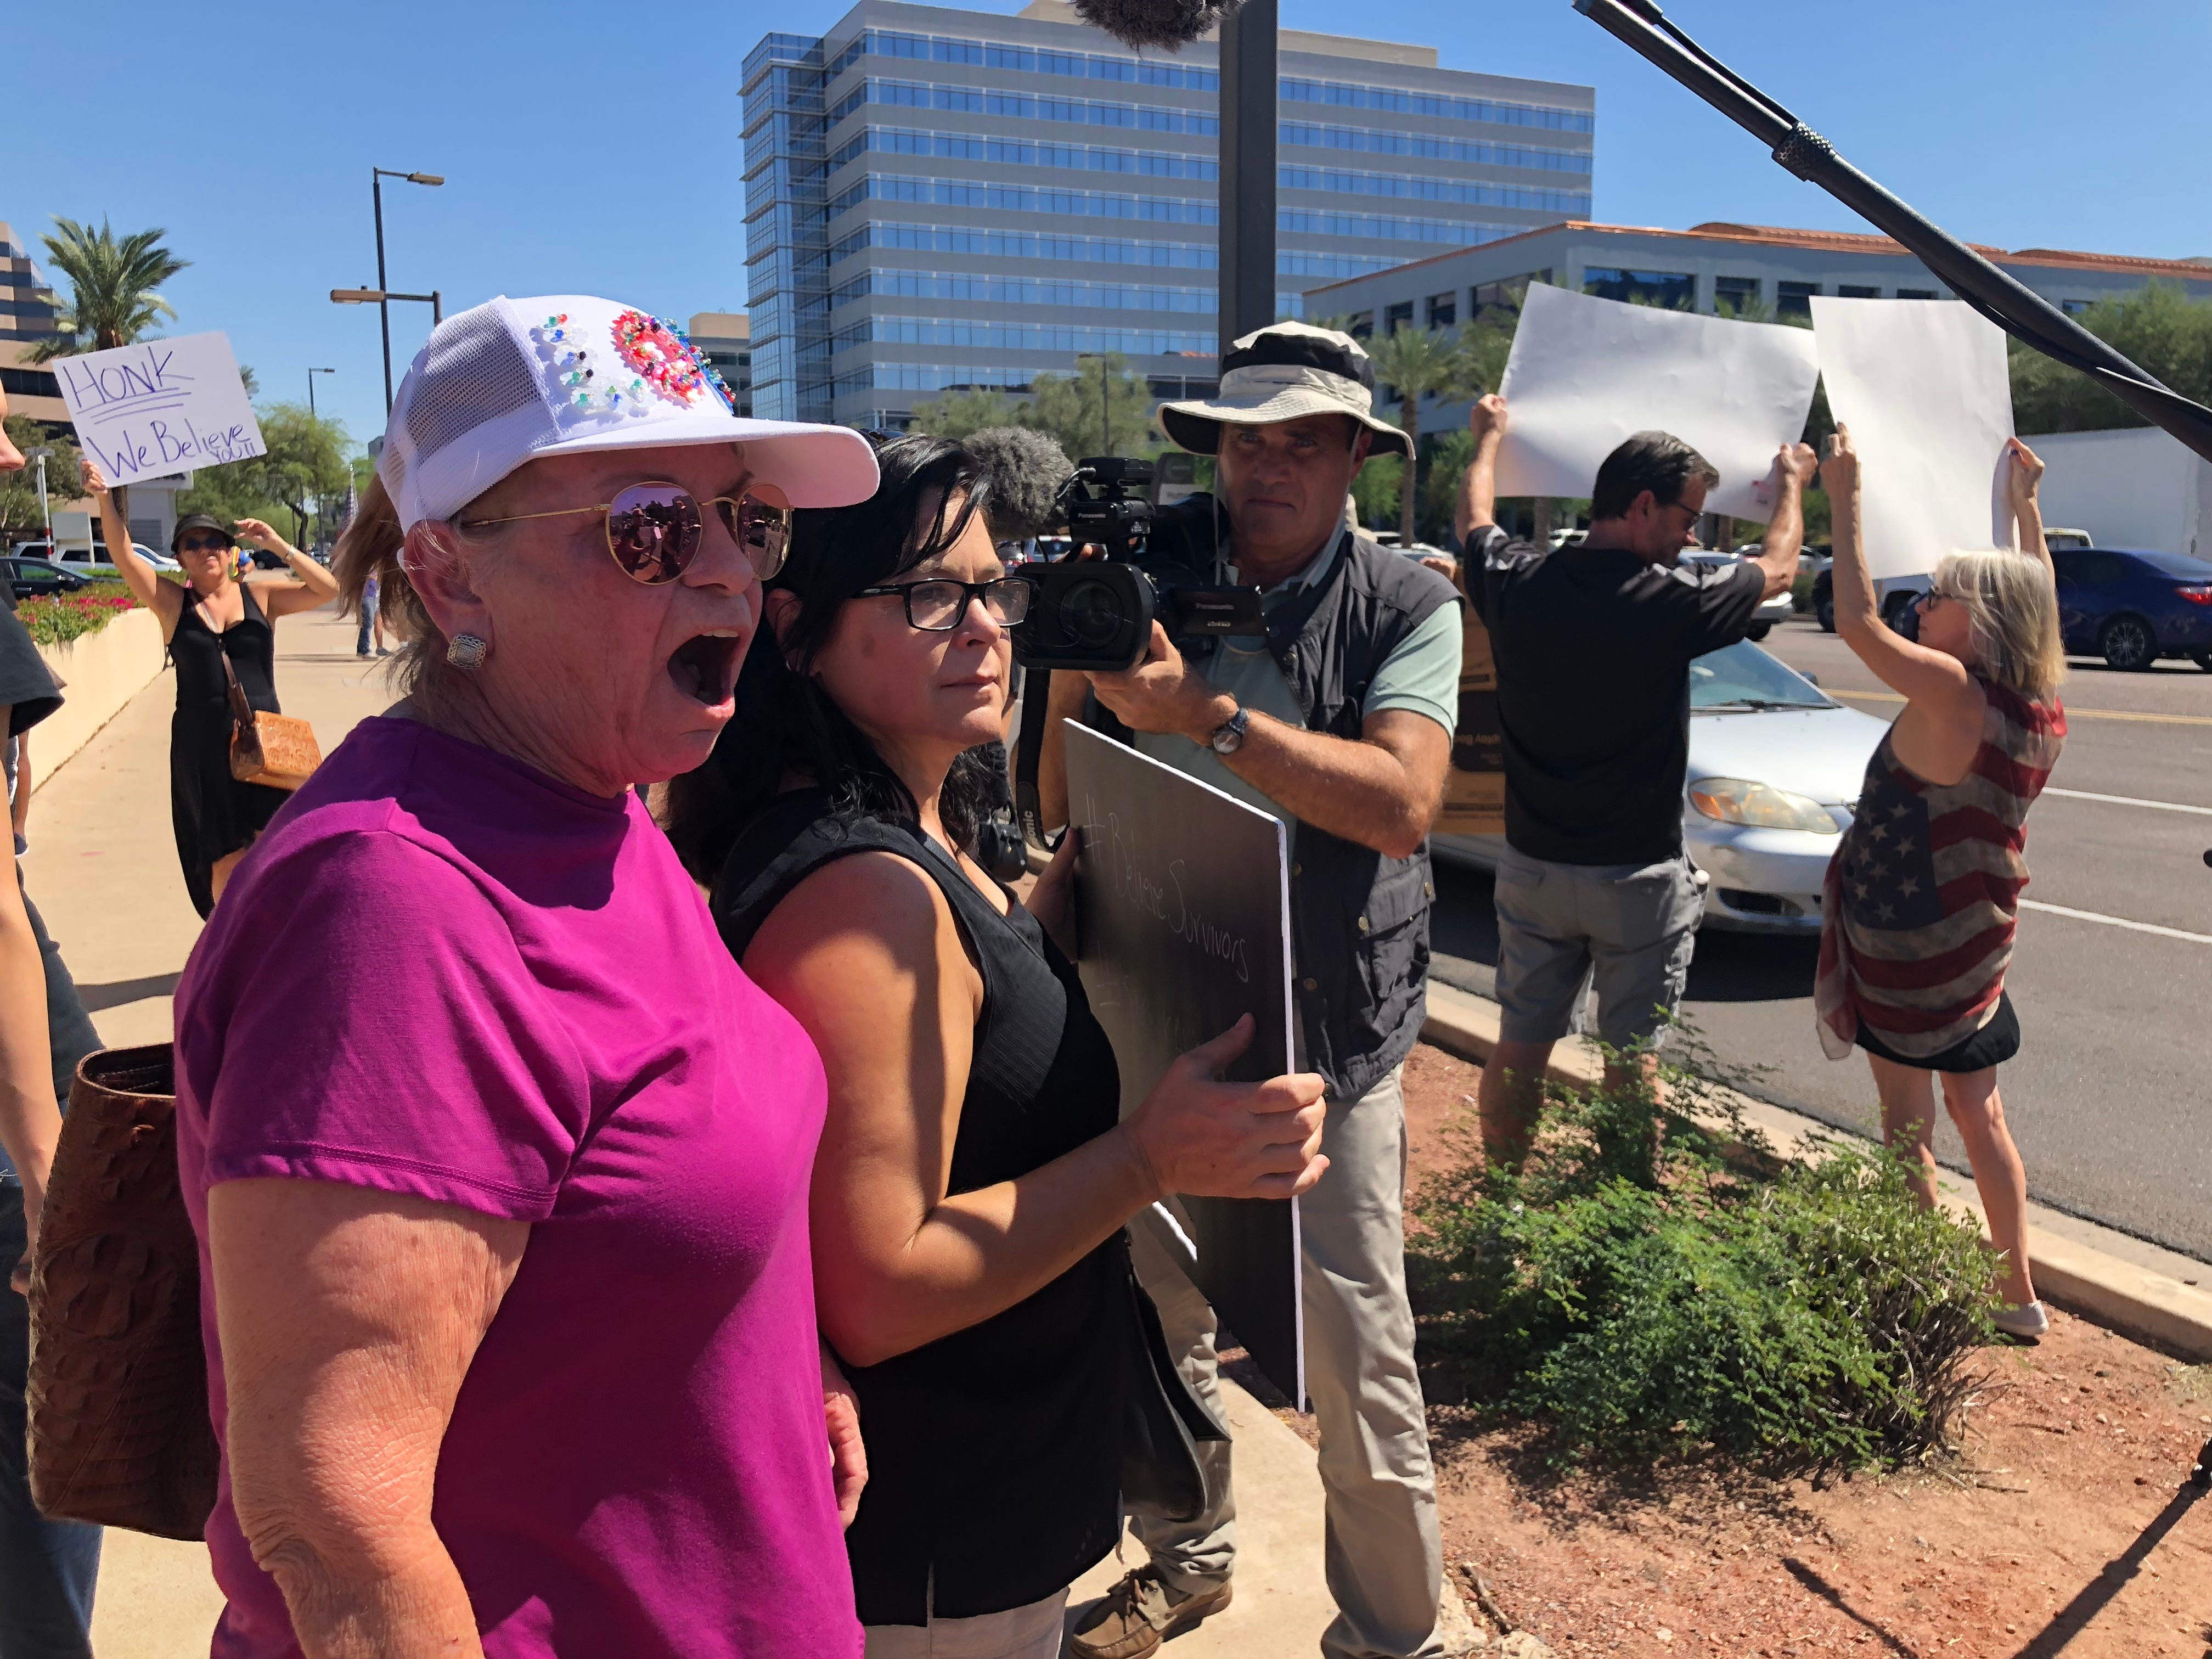 Protesters gather outside Sen. Jeff Flake's office in Phoenix on Sept. 28, 2018, as the Senate Judiciary Committee voted to recommend Brett Kavanaugh's Supreme Court nomination.